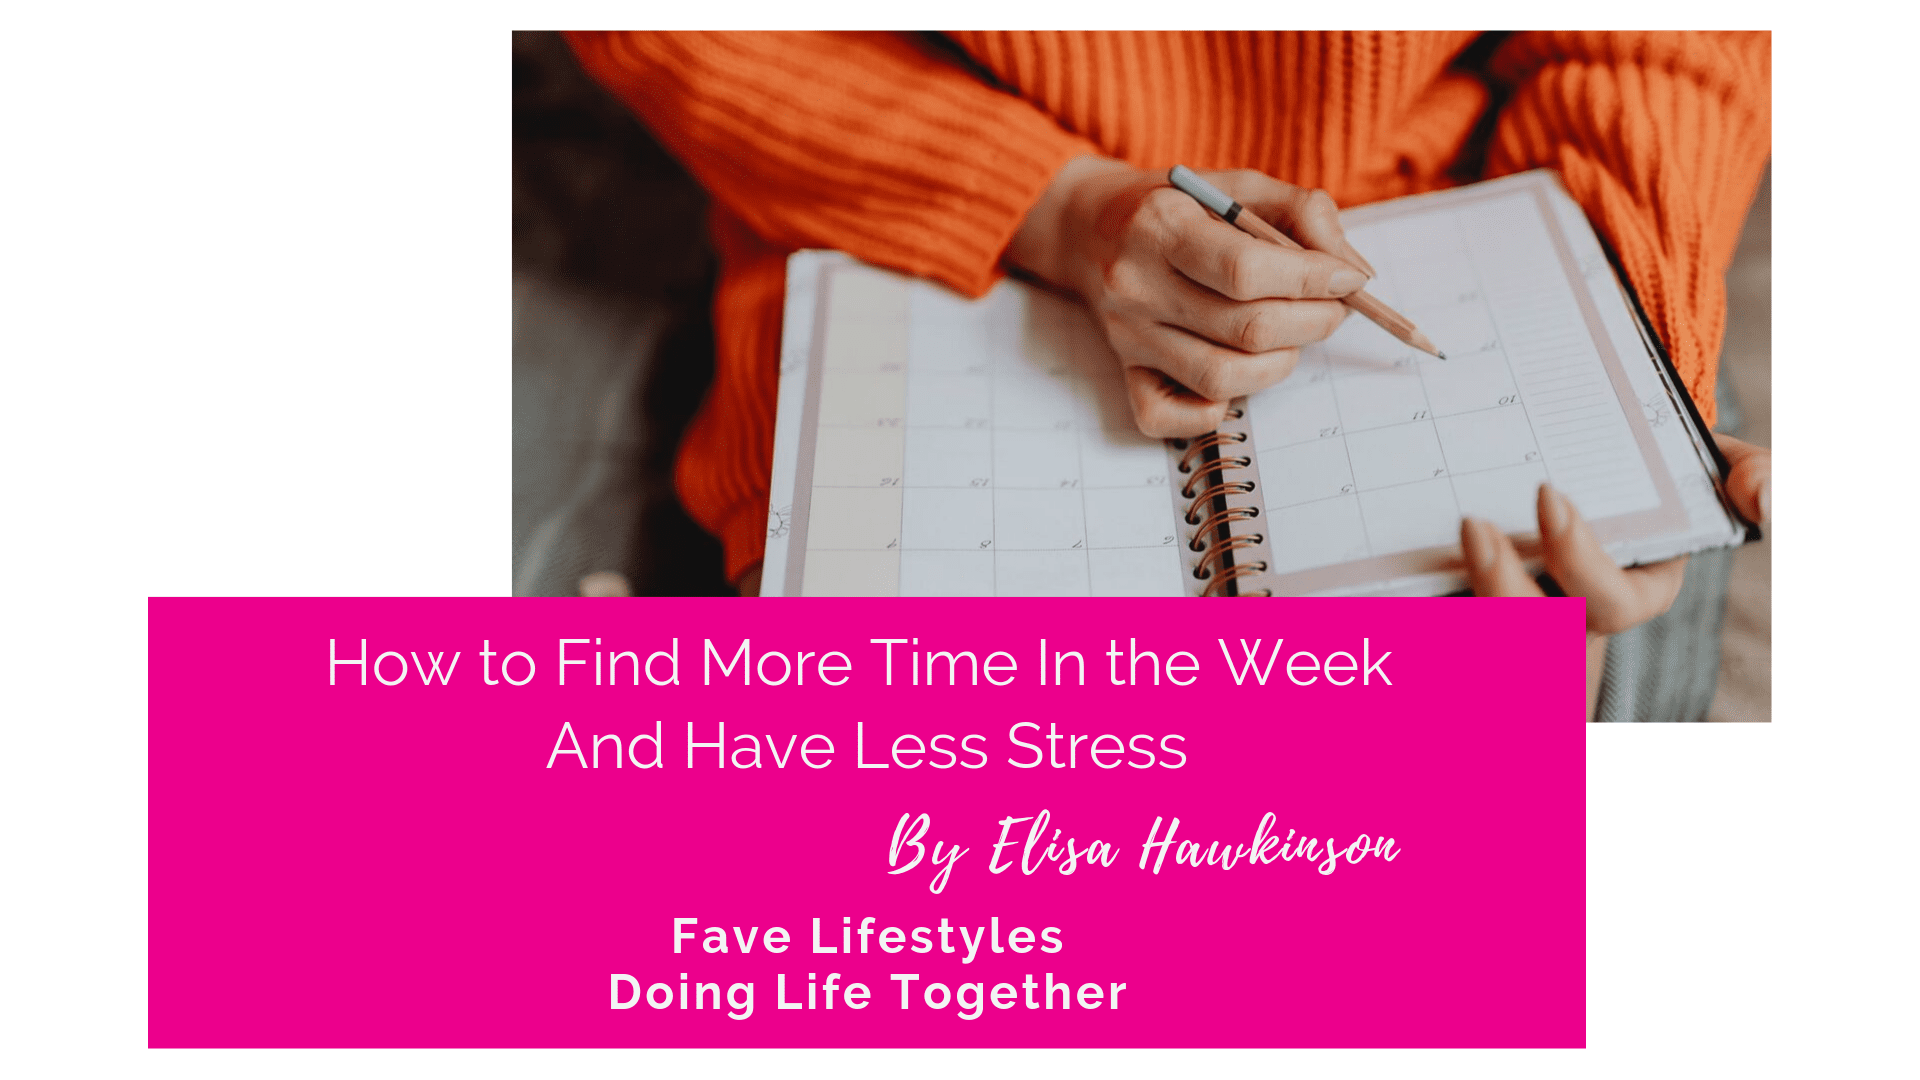 How To Find More Time In The Week And Have Less Stress